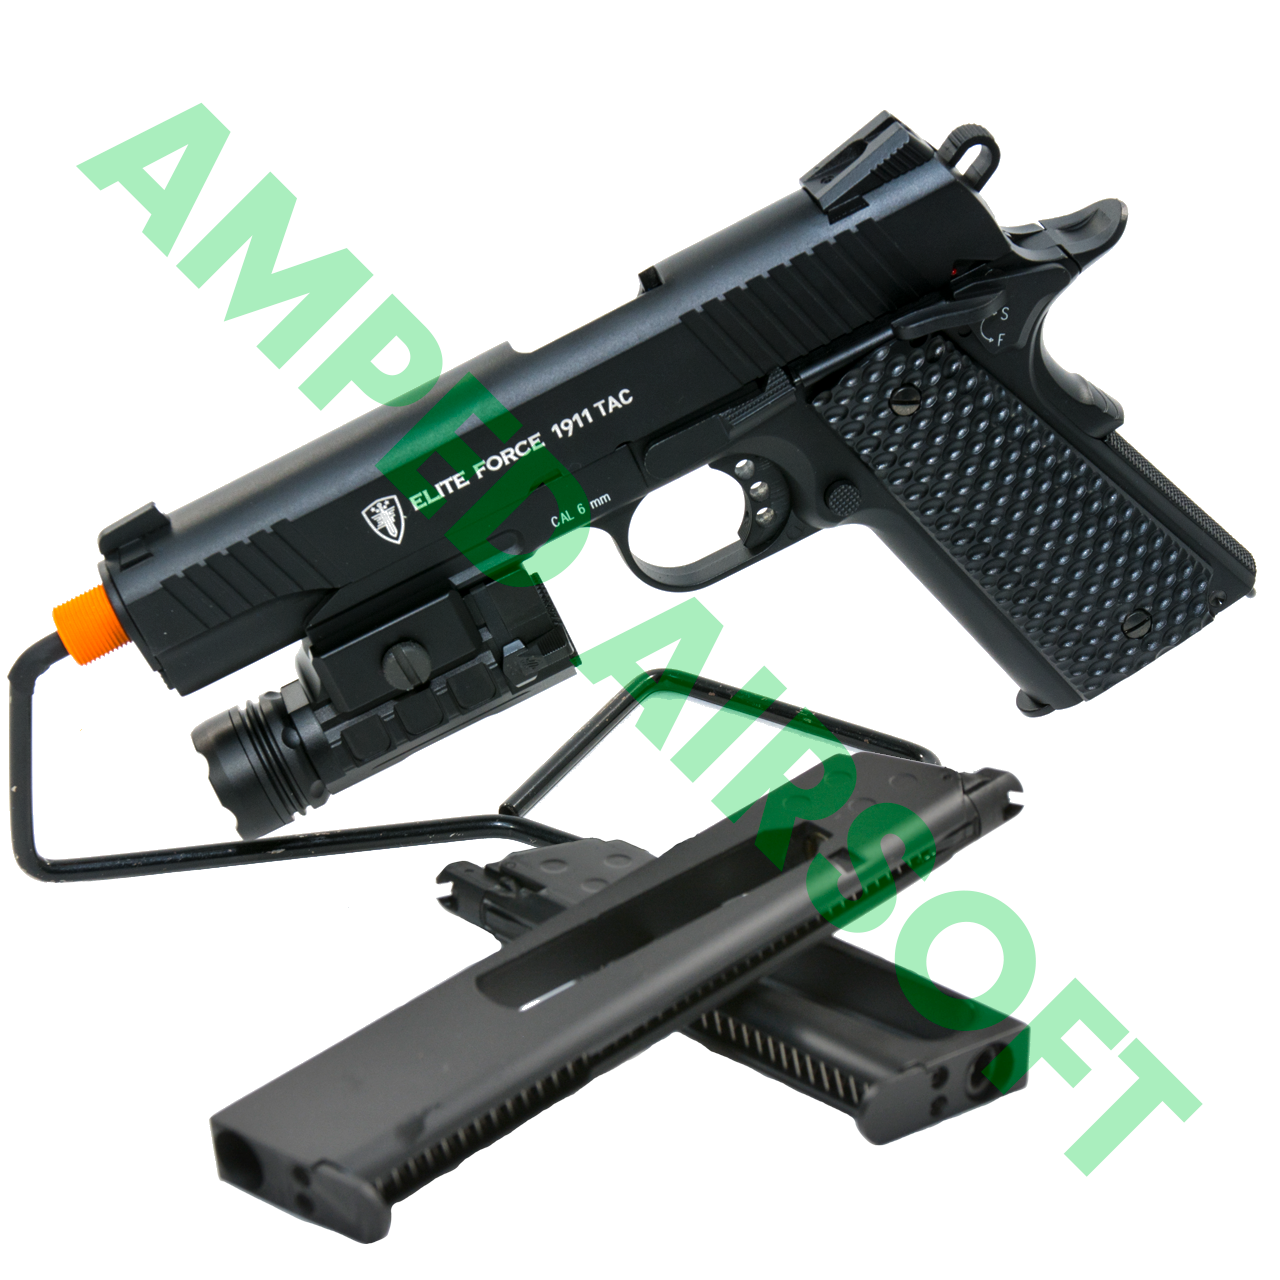 Amped Bundle - Elite Force 1911 Tactical (Black) Light Bundle with UTG Weapon Light, and extra Standard and Extended Magazines for a total of 3 Mags!